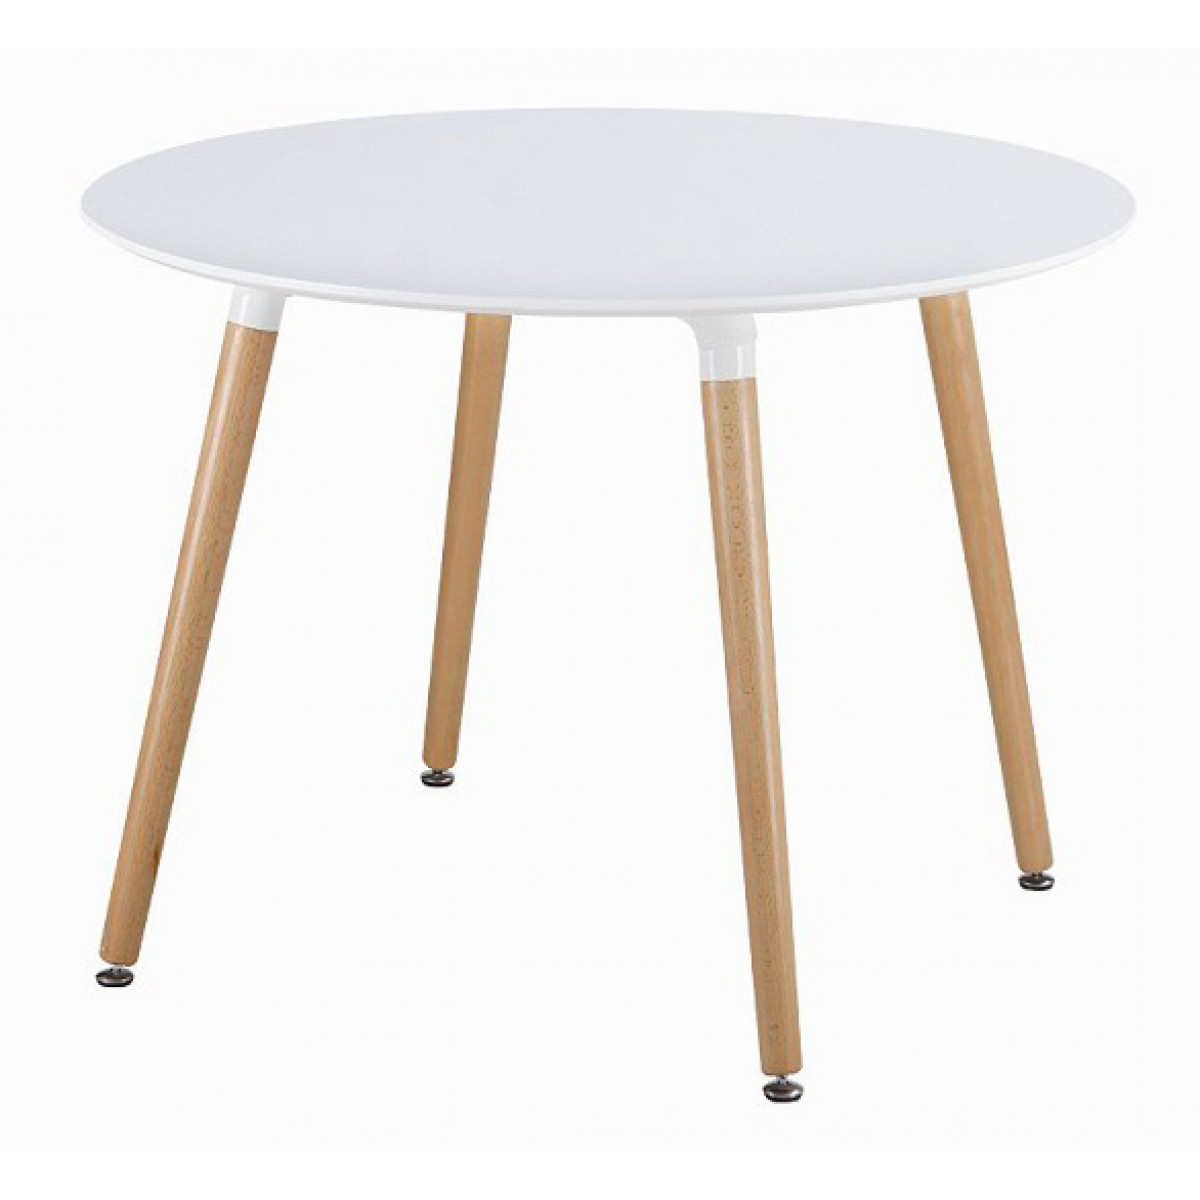 Eames Style Dsw White Round Dining Table Rh Emoderndecor Com Assembly Instructions